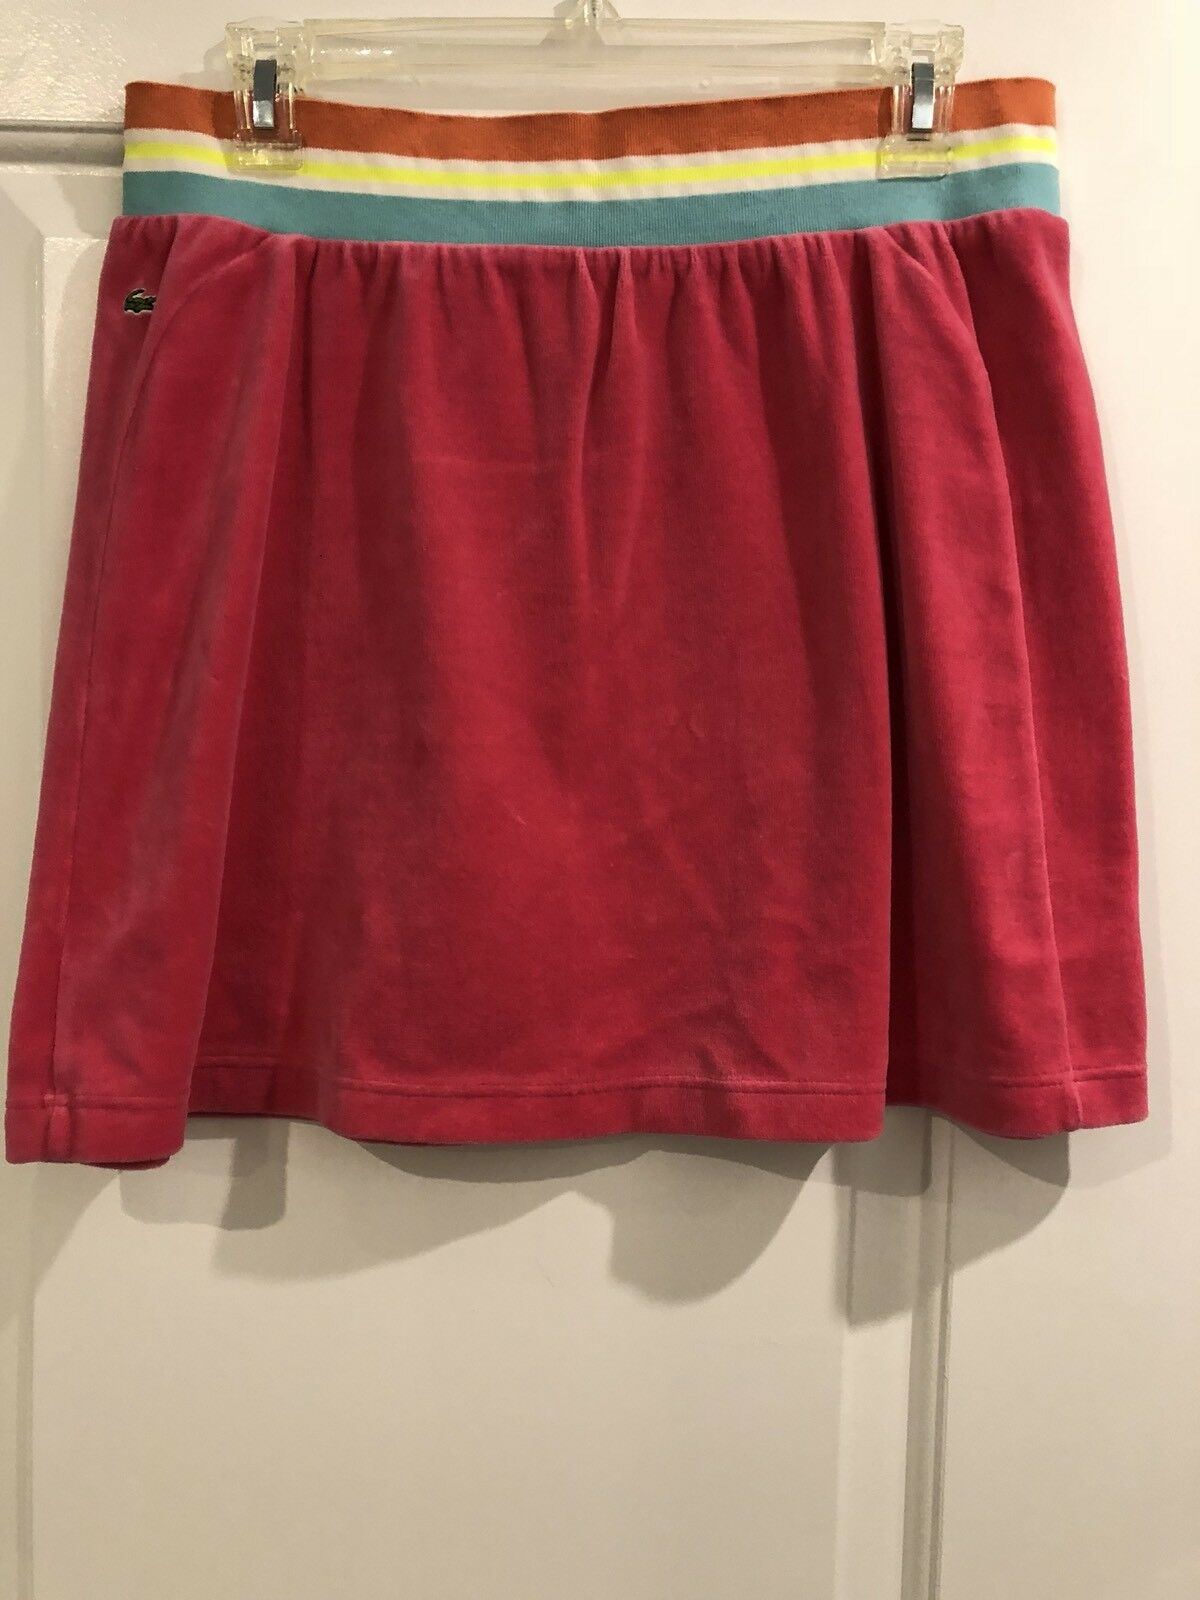 New LACOSTE Womens Velour Skirt Hot Pink Size 44